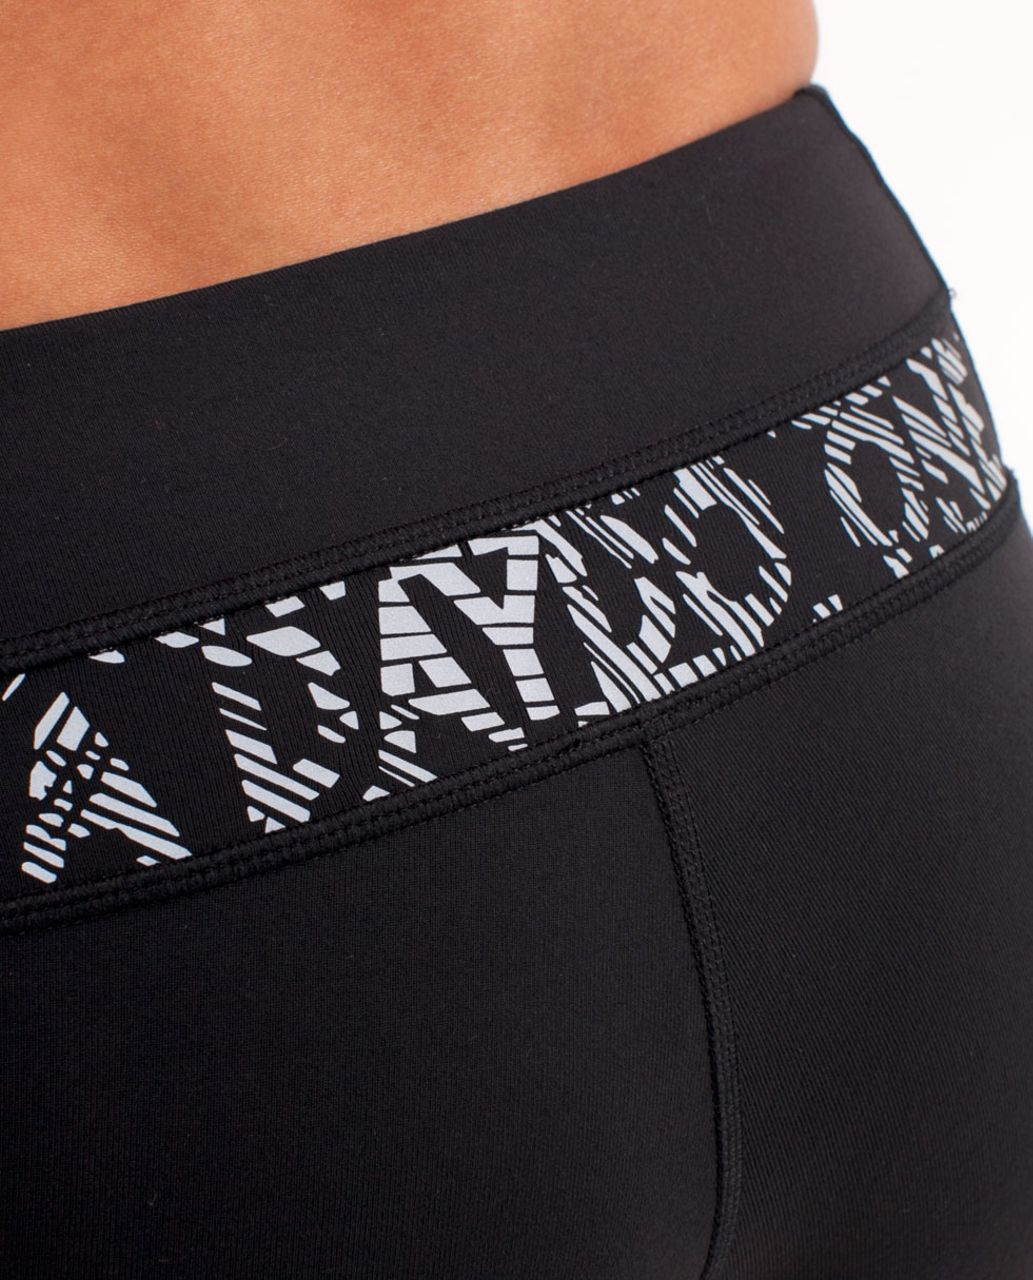 Lululemon Groove Pant (Regular) - Black /  Reflective Water Sketch